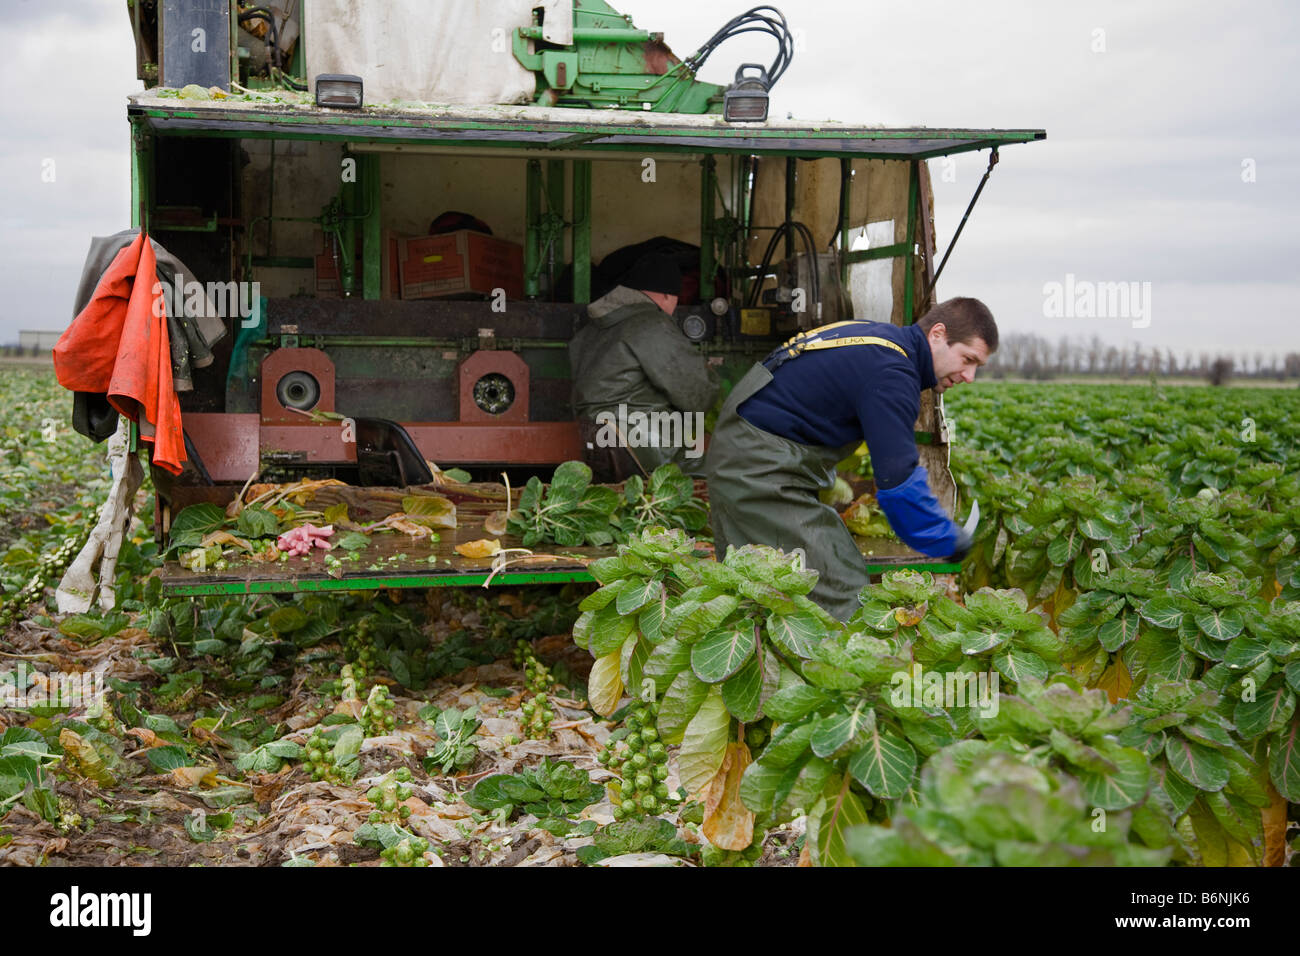 Grower and farm workers harvesting Brussels sprouts